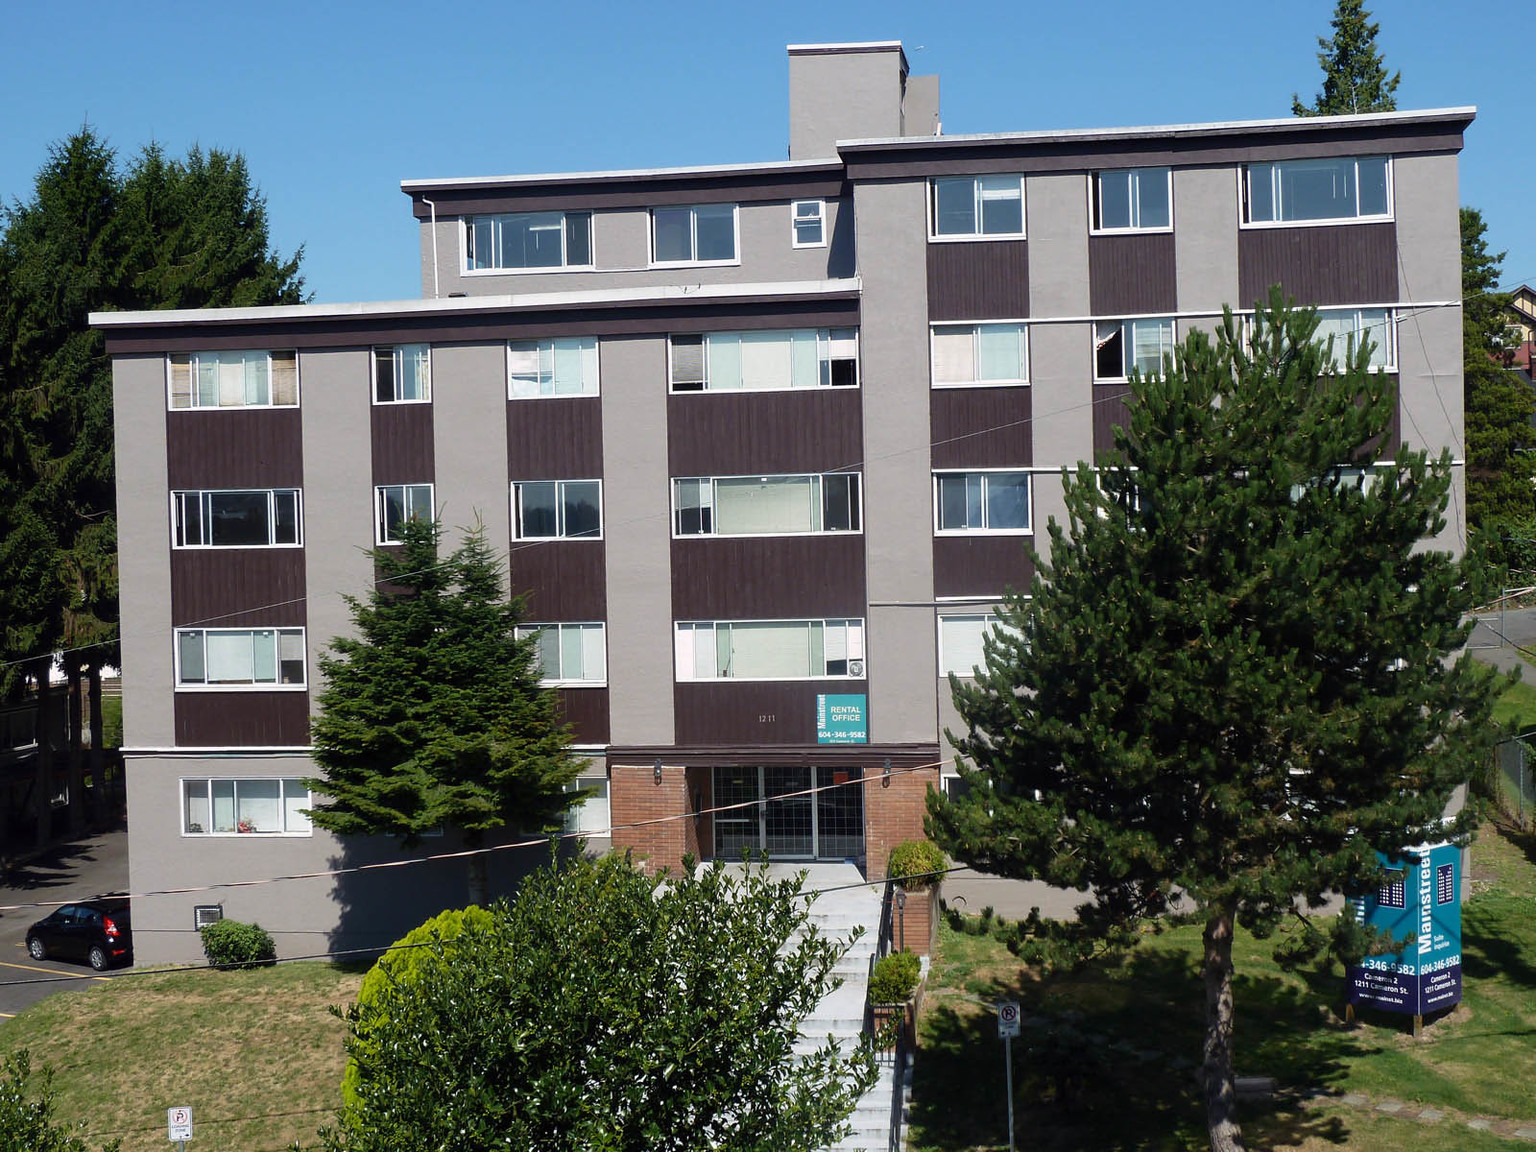 1210 Cameron St., New Westminster, BC - $1,250